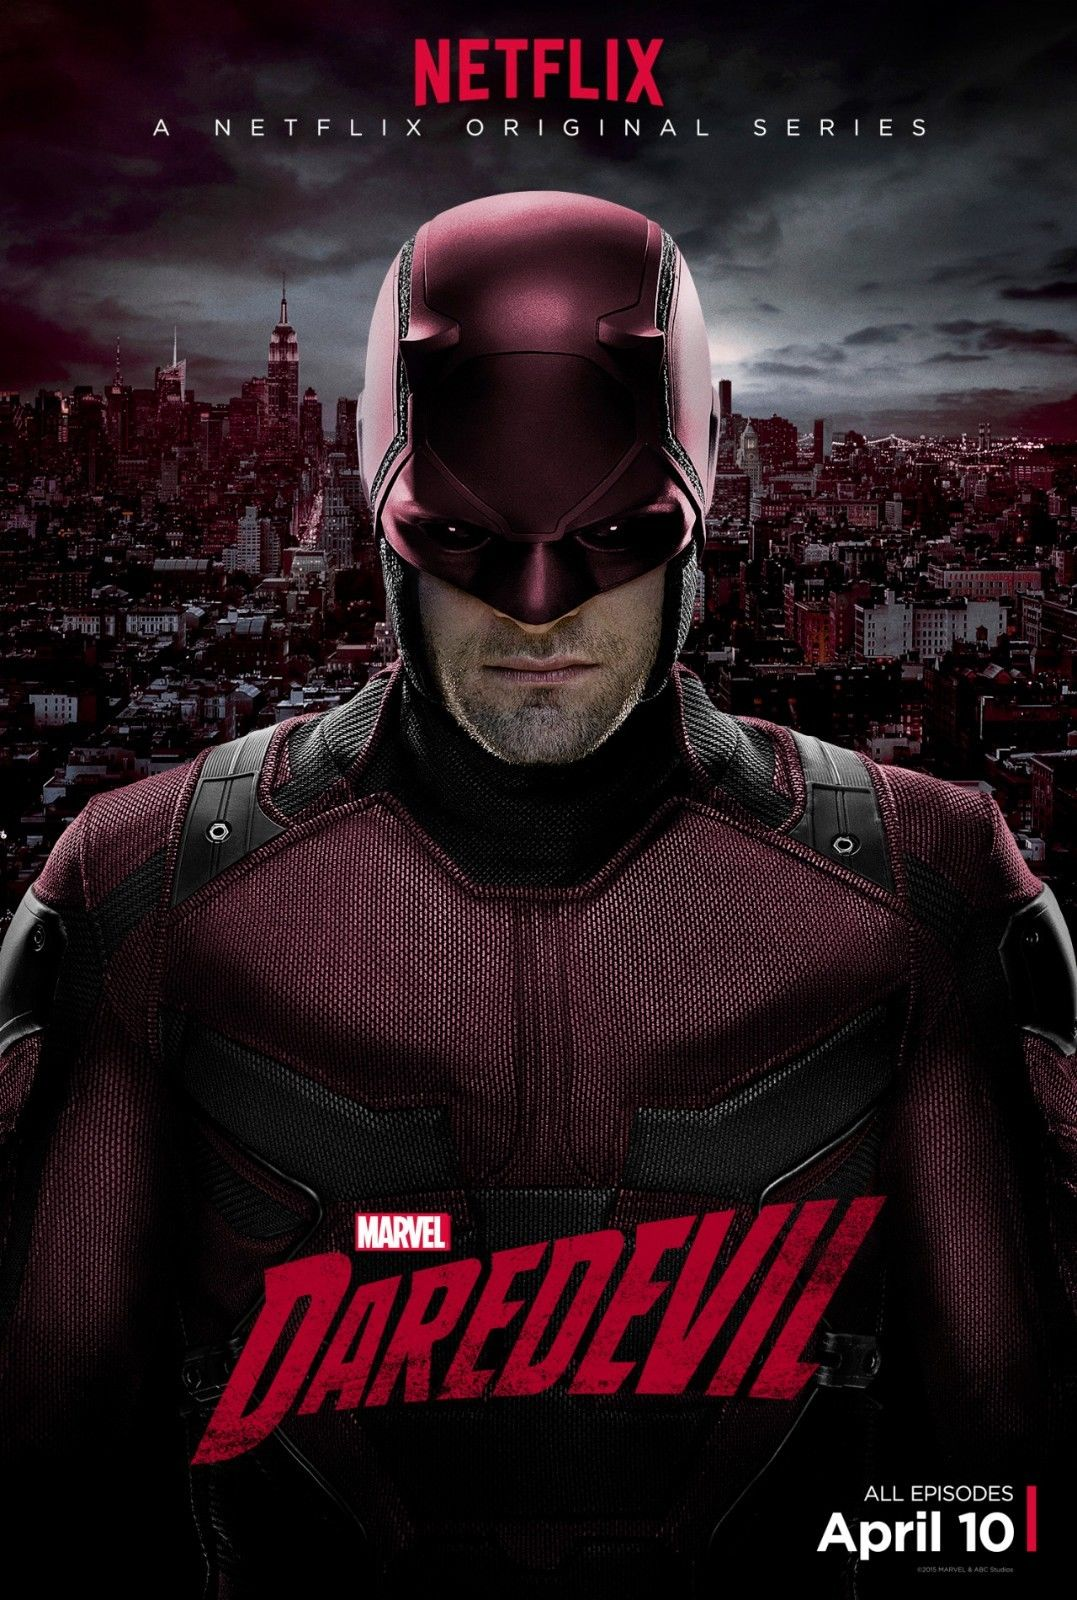 Daredevil tv show poster avengers x men batman